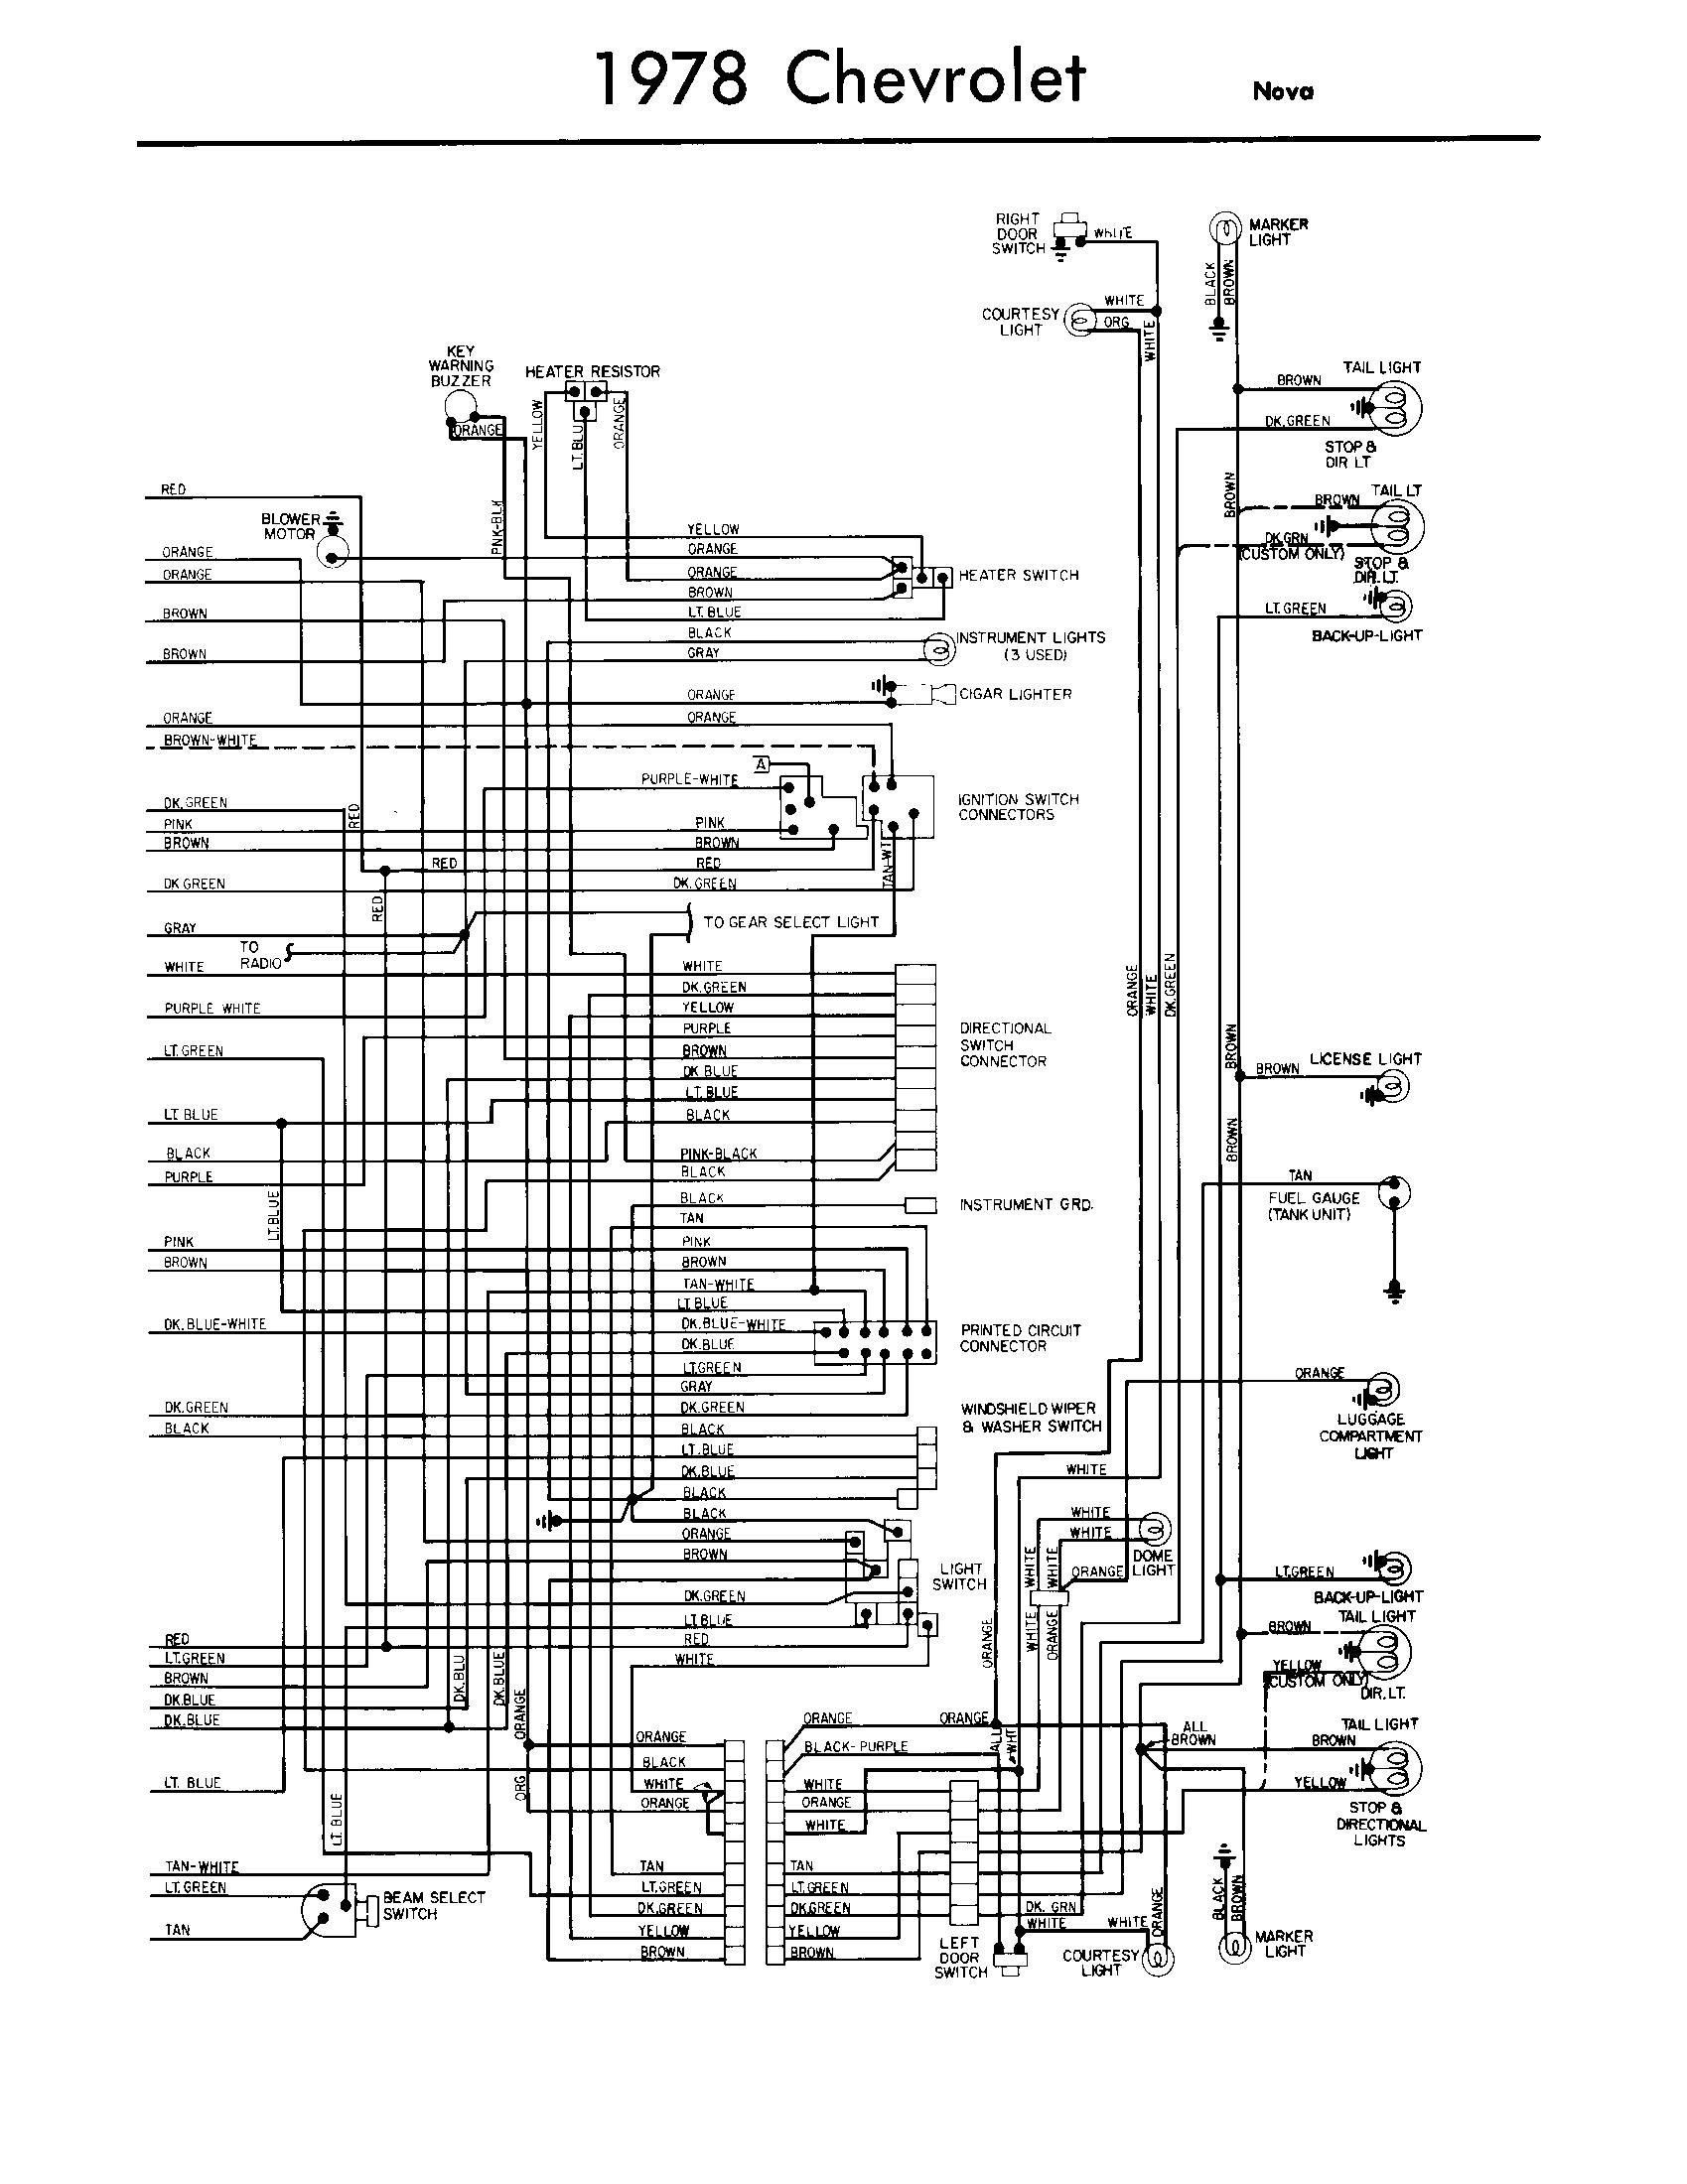 [QNCB_7524]  1979 Chevy Corvette Wiring Schematic Php Free Download Mesmerizing 1976  Diagram | Light Switch Wiring Diagram 1981 C10 |  | Pinterest